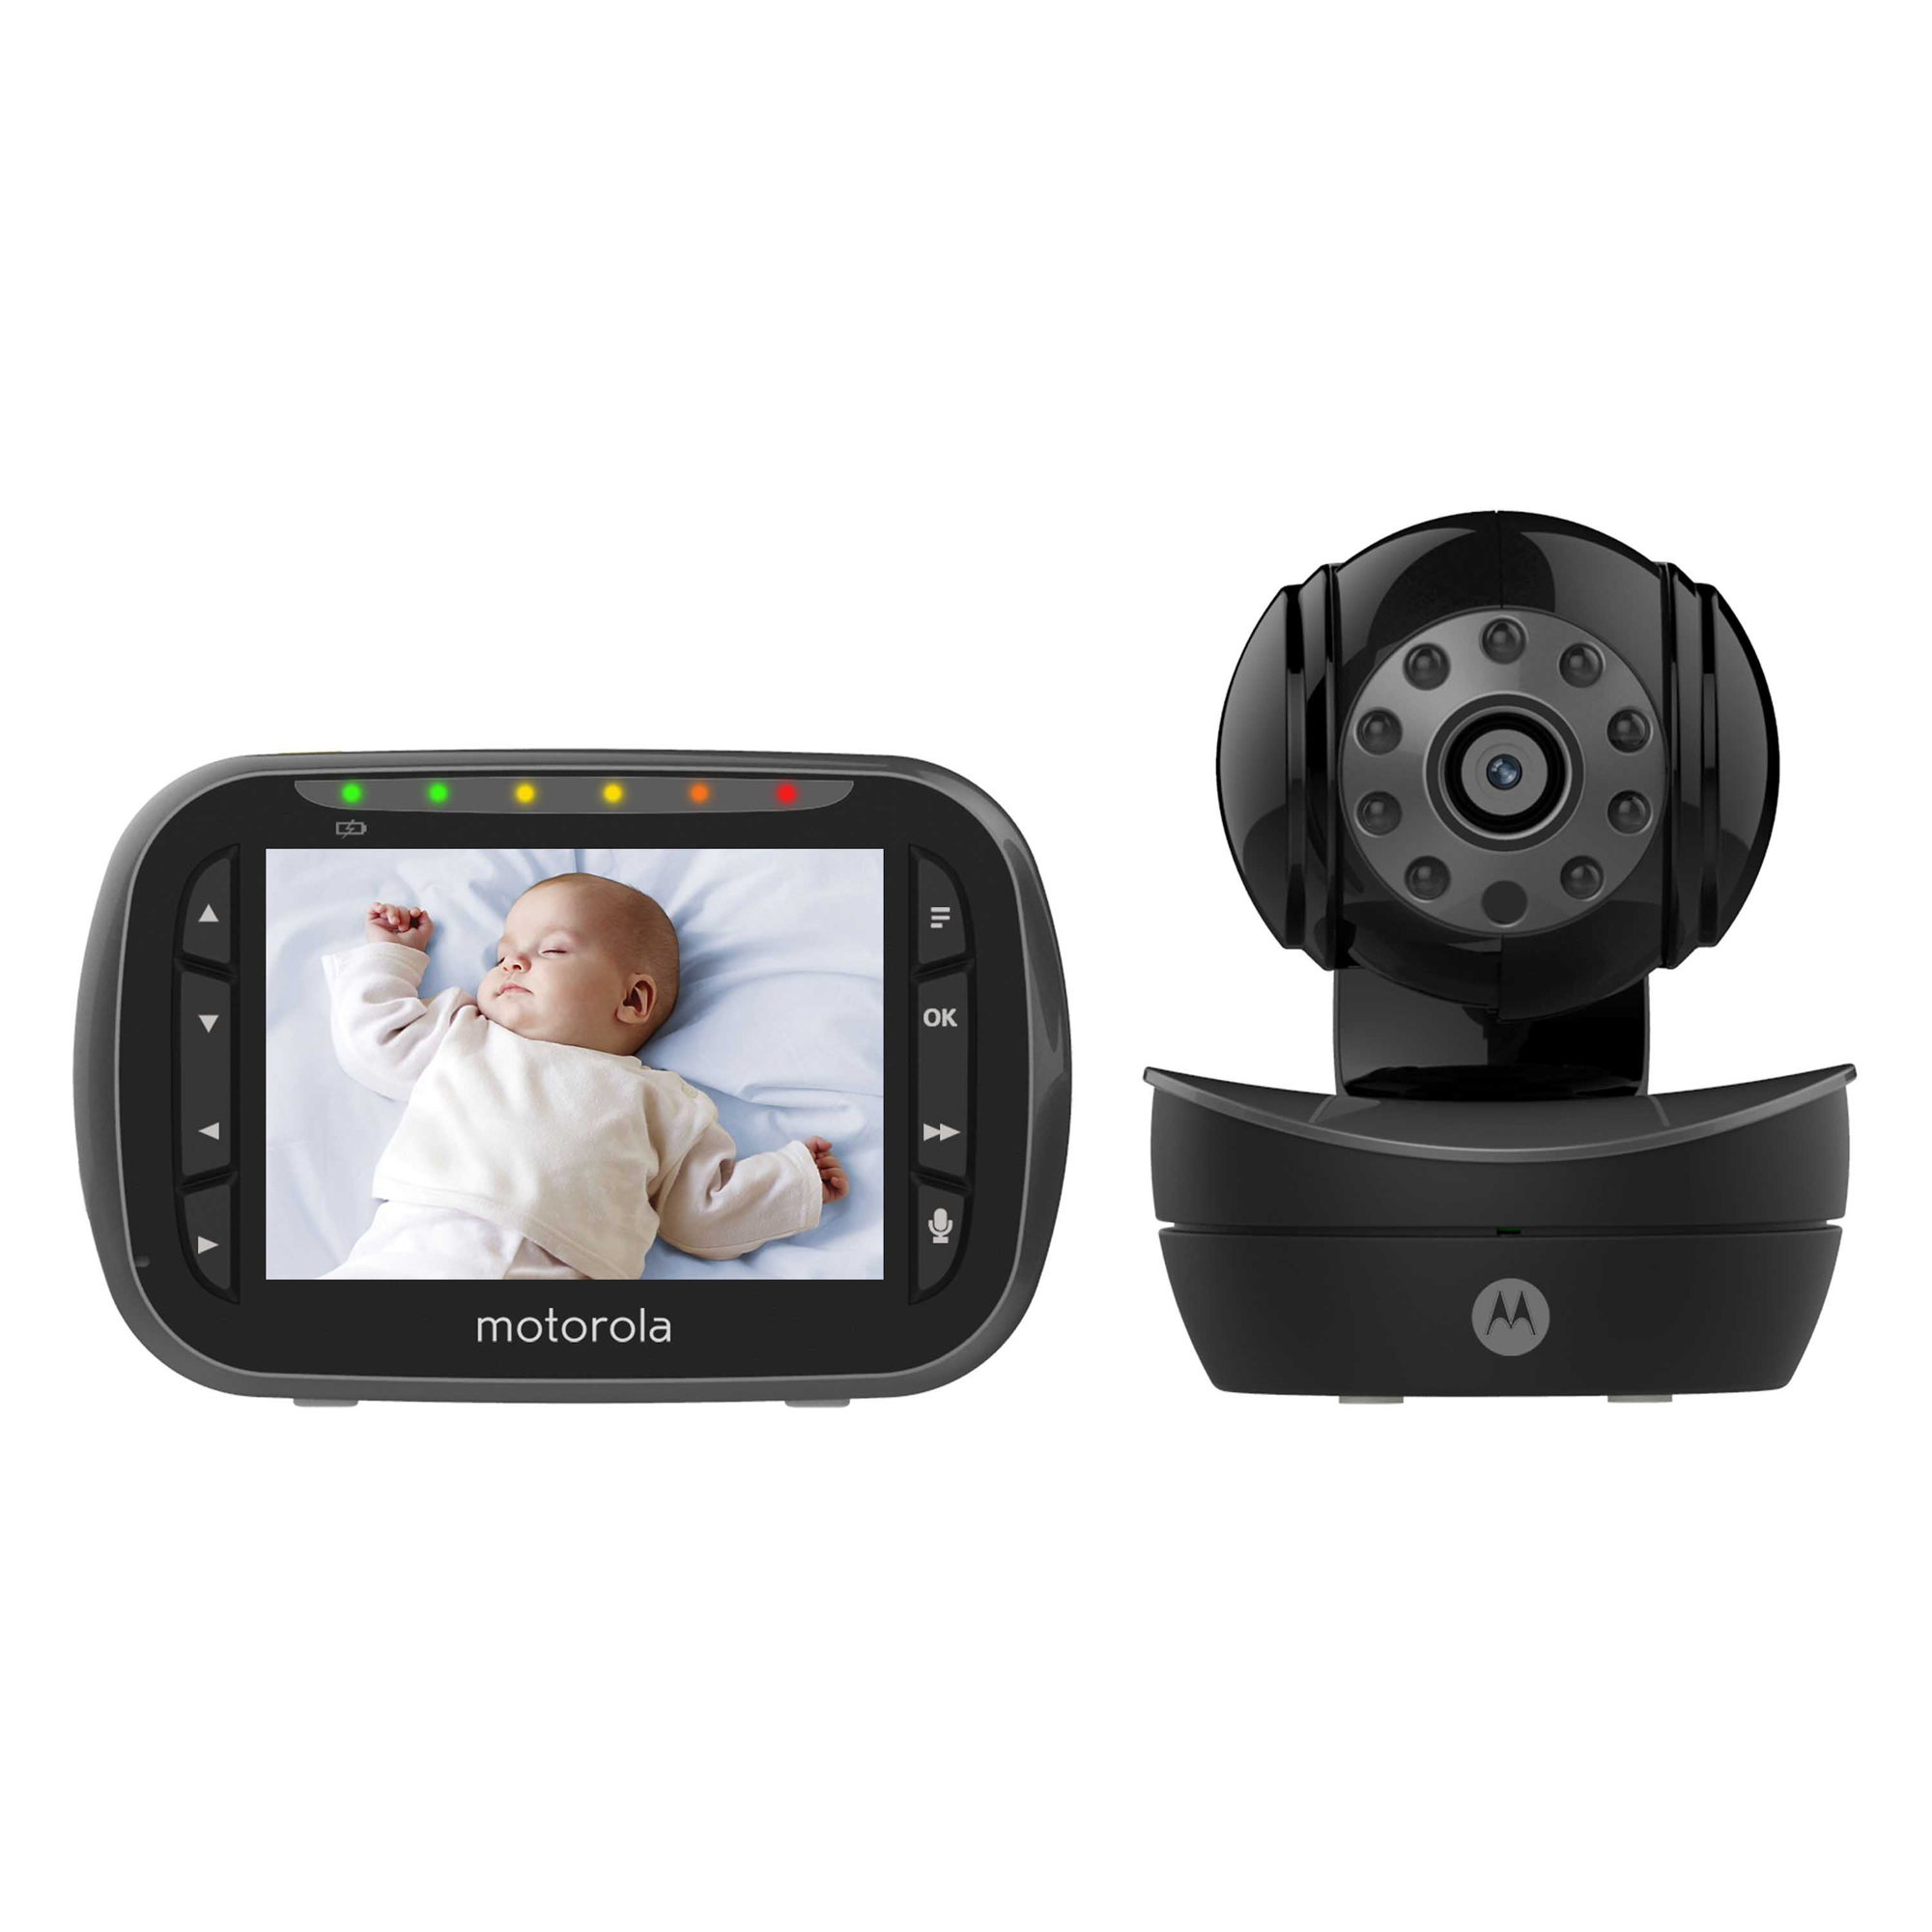 Motorola Remote Wireless Two-Way Communication Video Baby Monitor - Brown Box